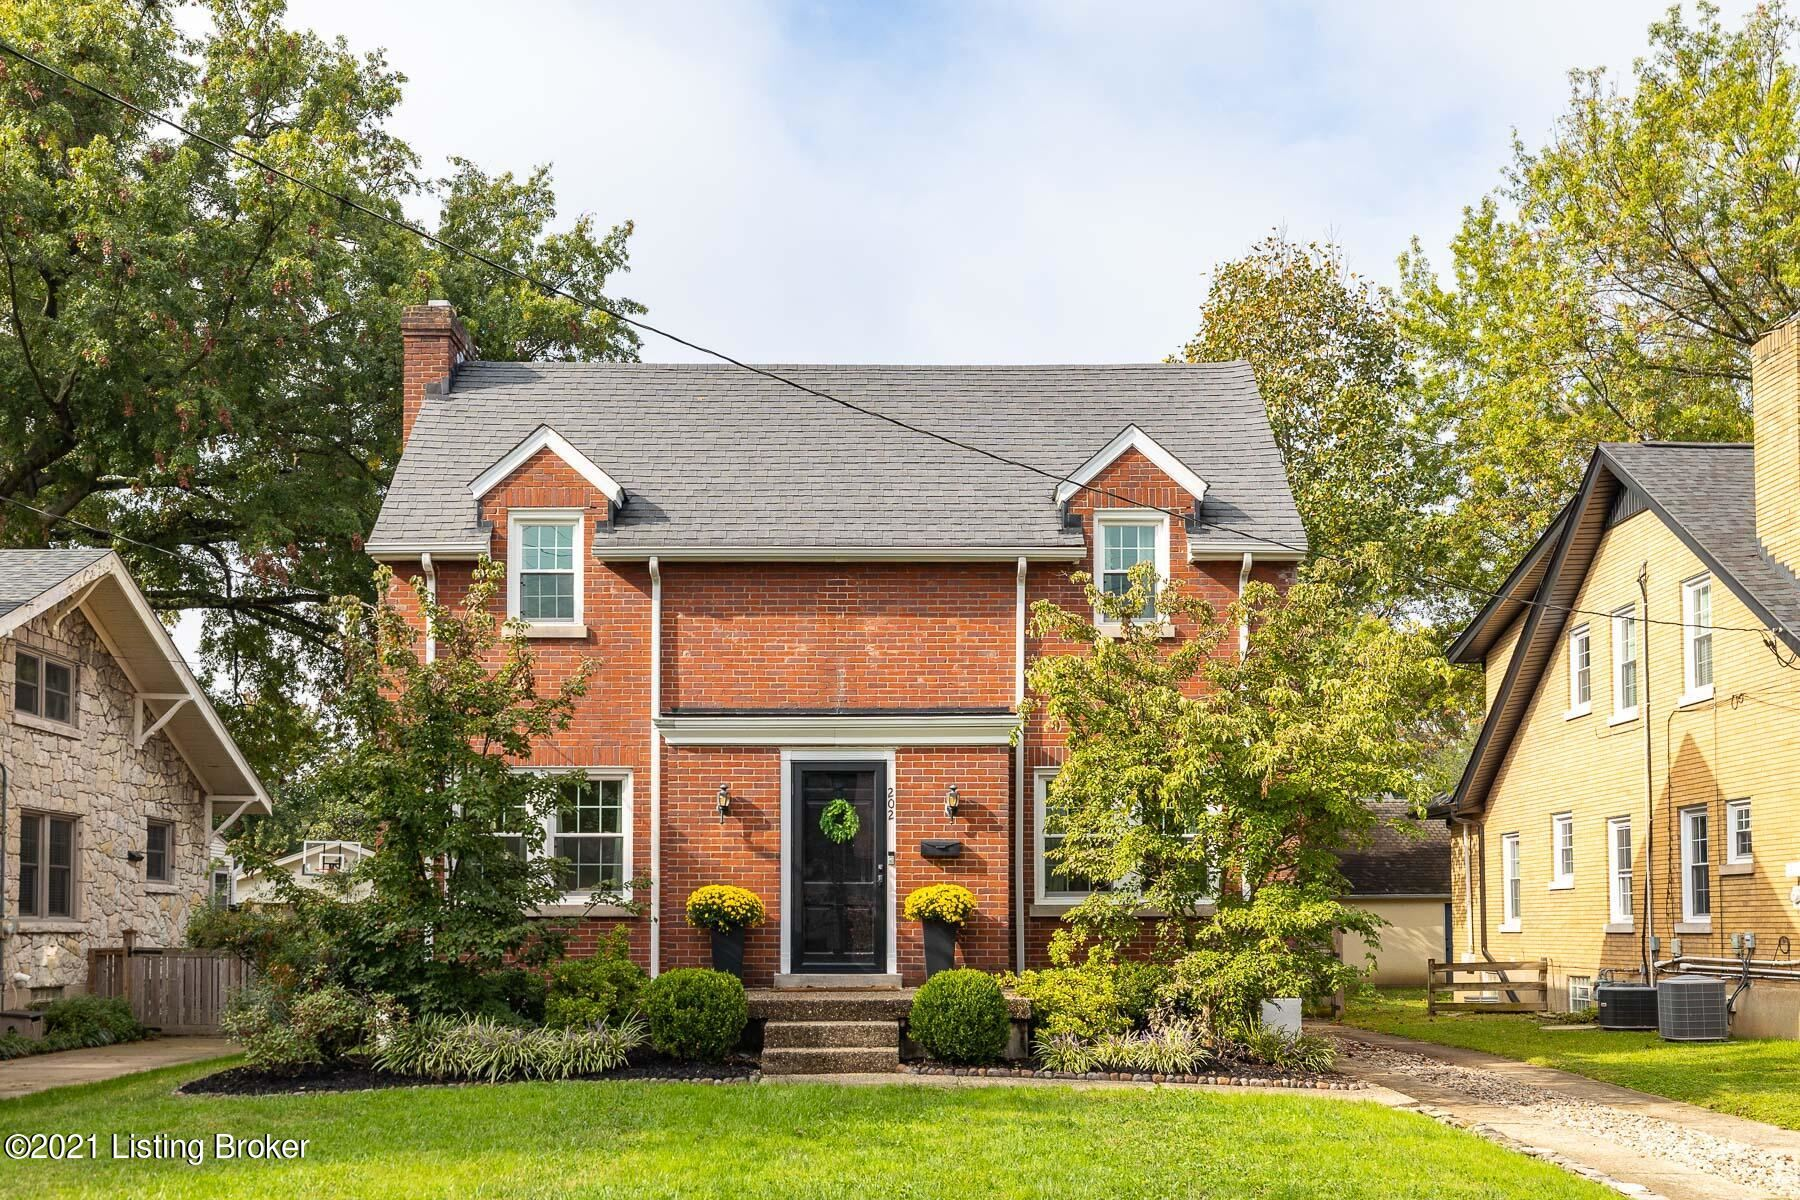 Photo for 202 Oxford Pl, Louisville, KY 40207 (MLS # 1598530)